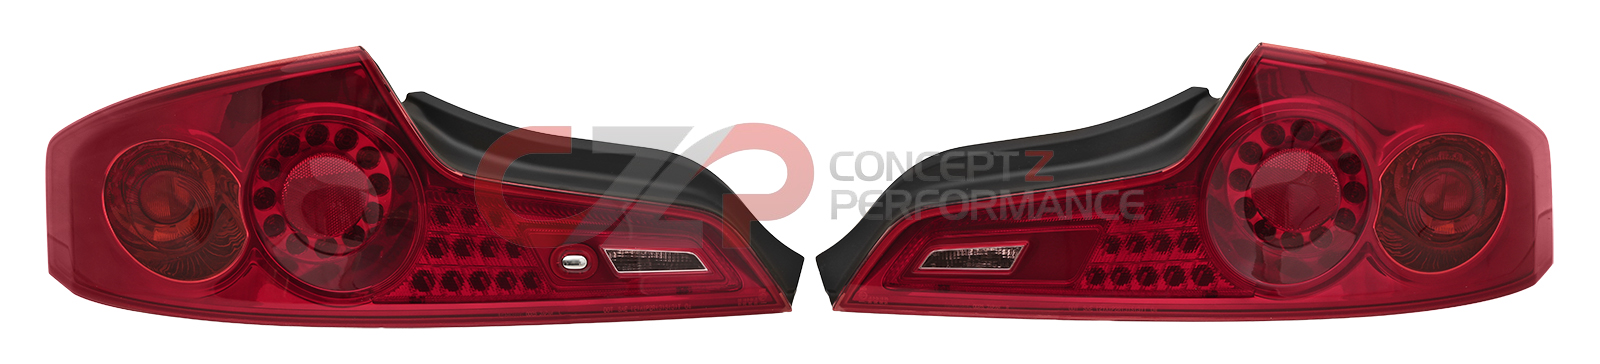 Nissan JDM Nismo Skyline 350GT Genuine Tail Light Set, Infiniti G35 03-07 Coupe V35